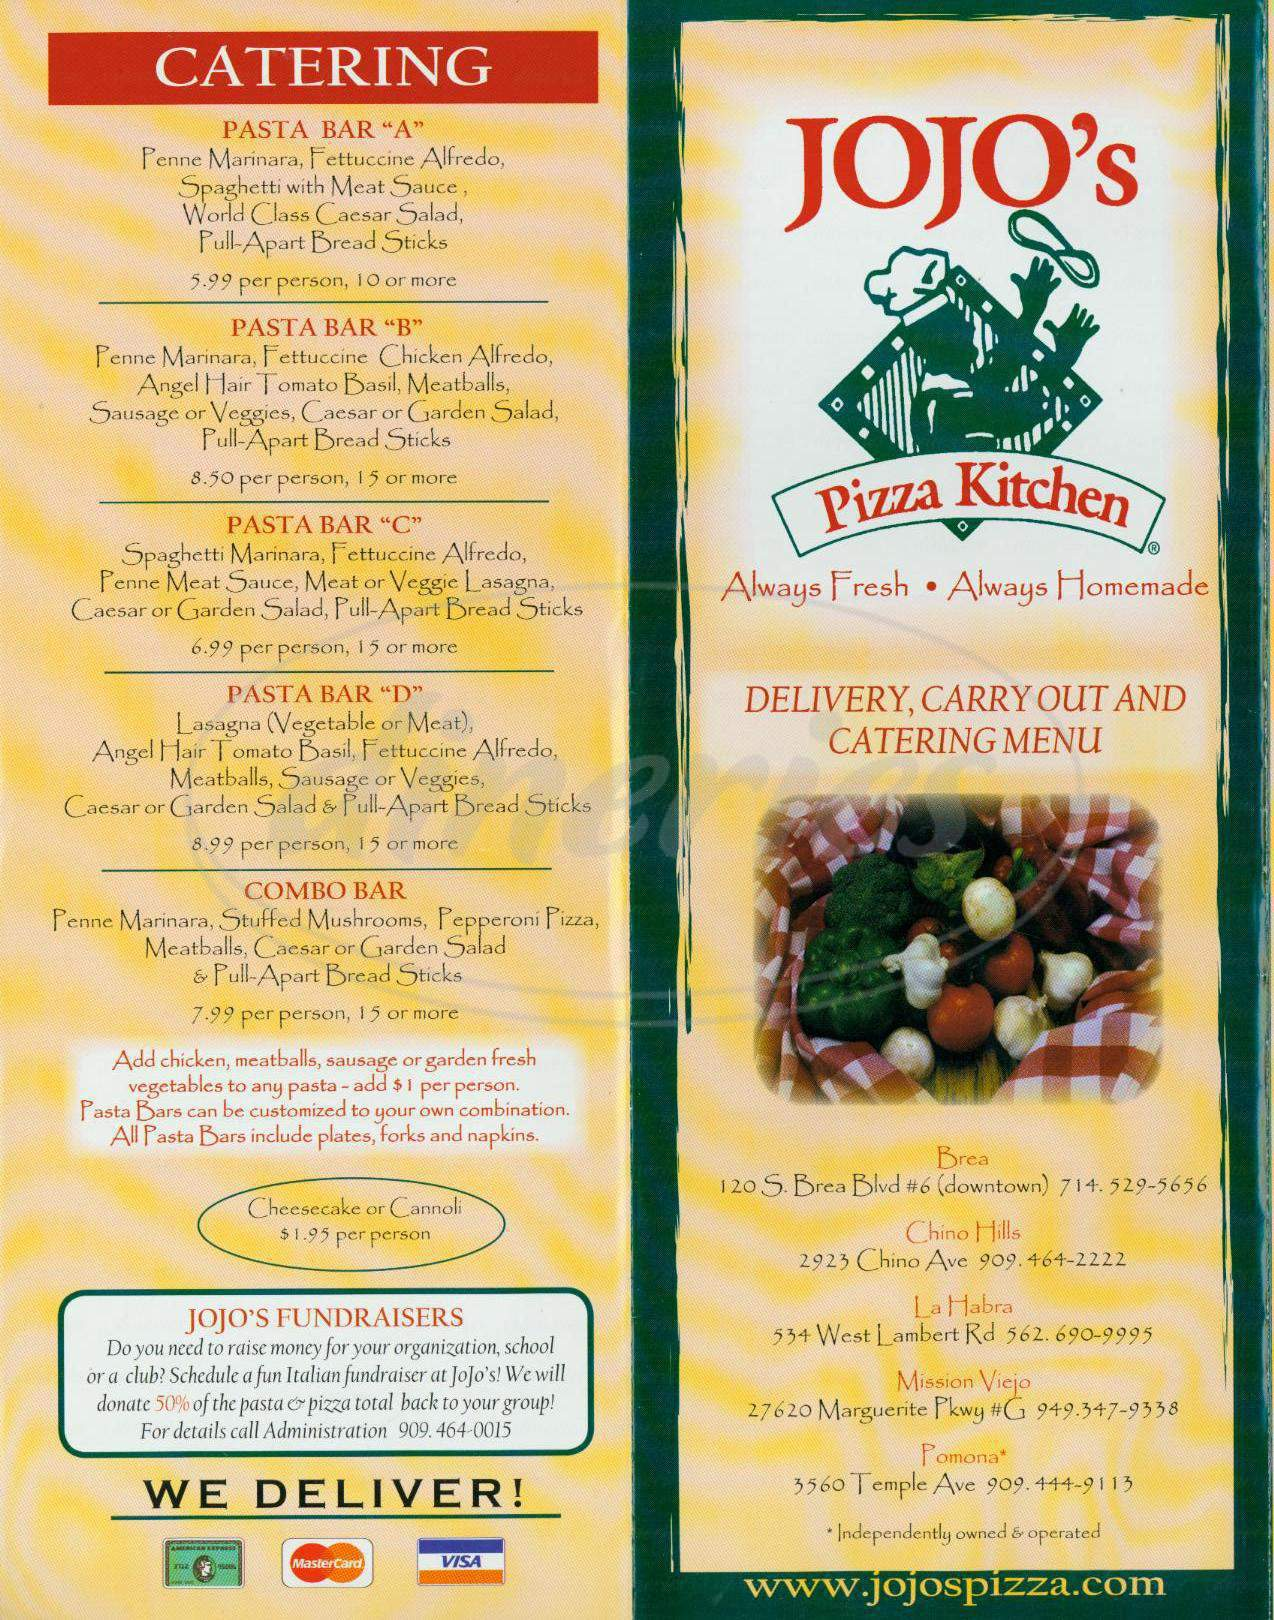 Big menu for JoJo's Pizza Kitchen, Pomona